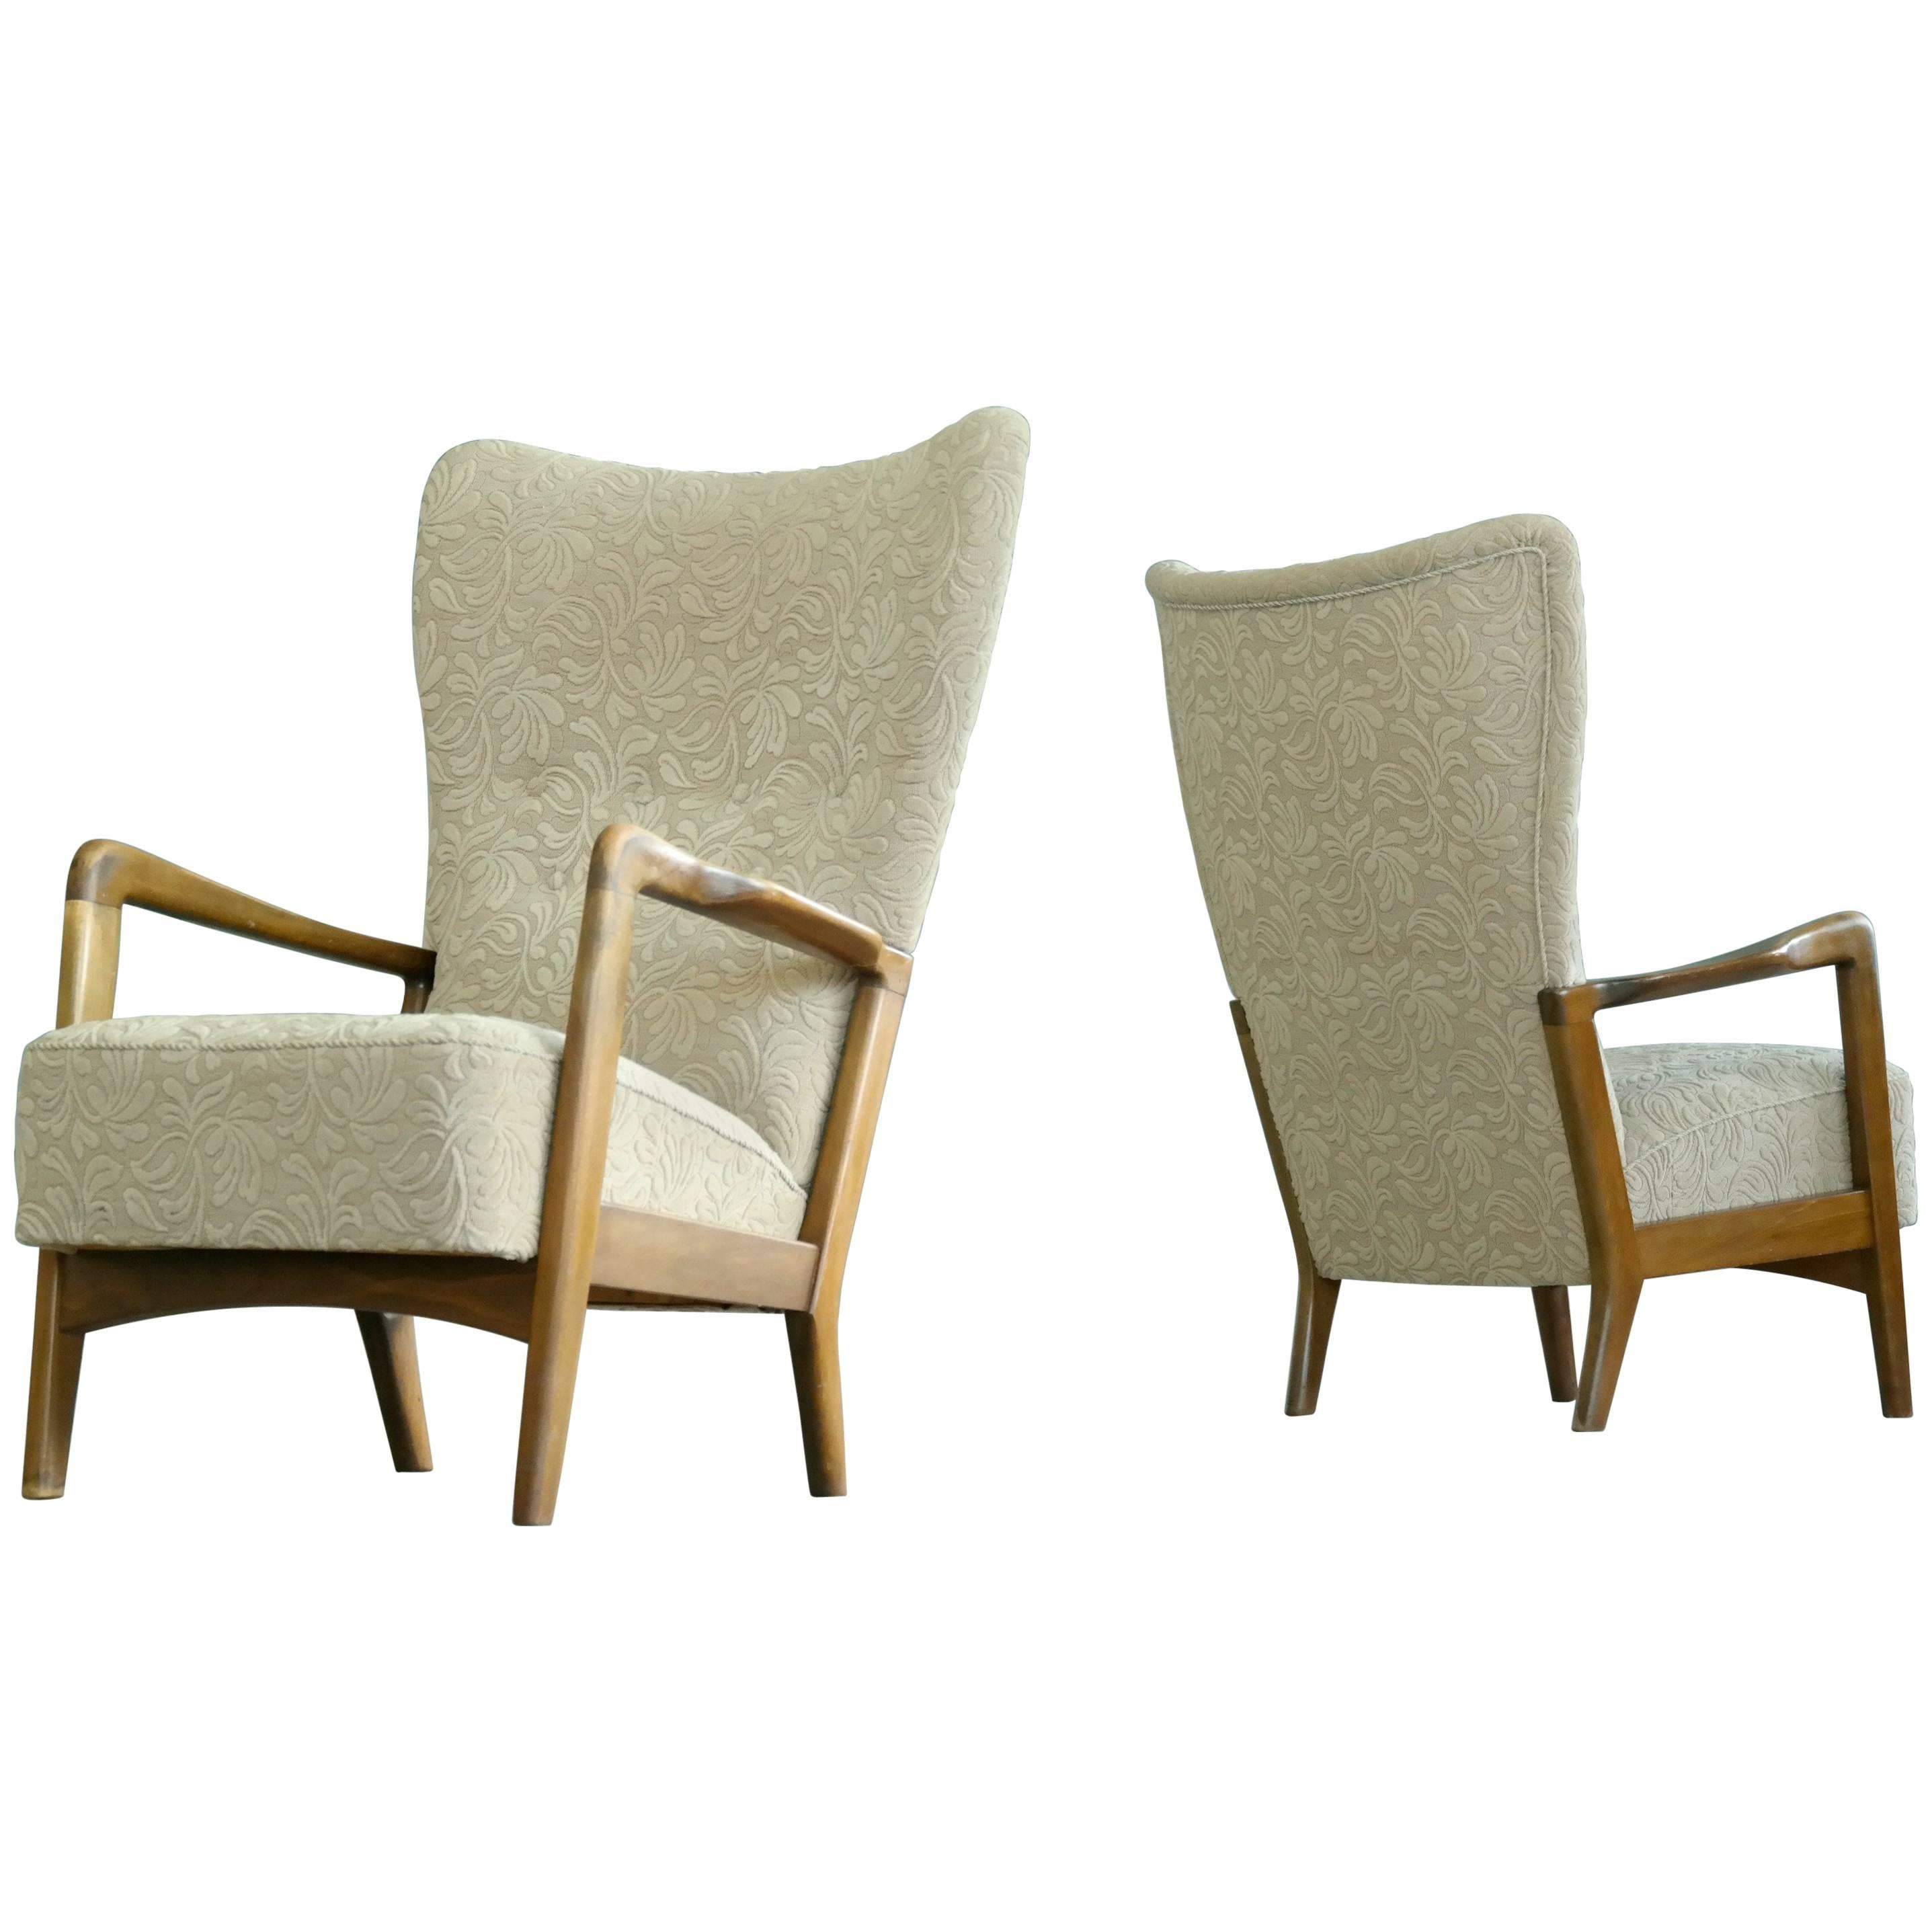 Soren Hansen Pair Of High Back Open Armchairs For Fritz Hansen, Denmark,  1940s